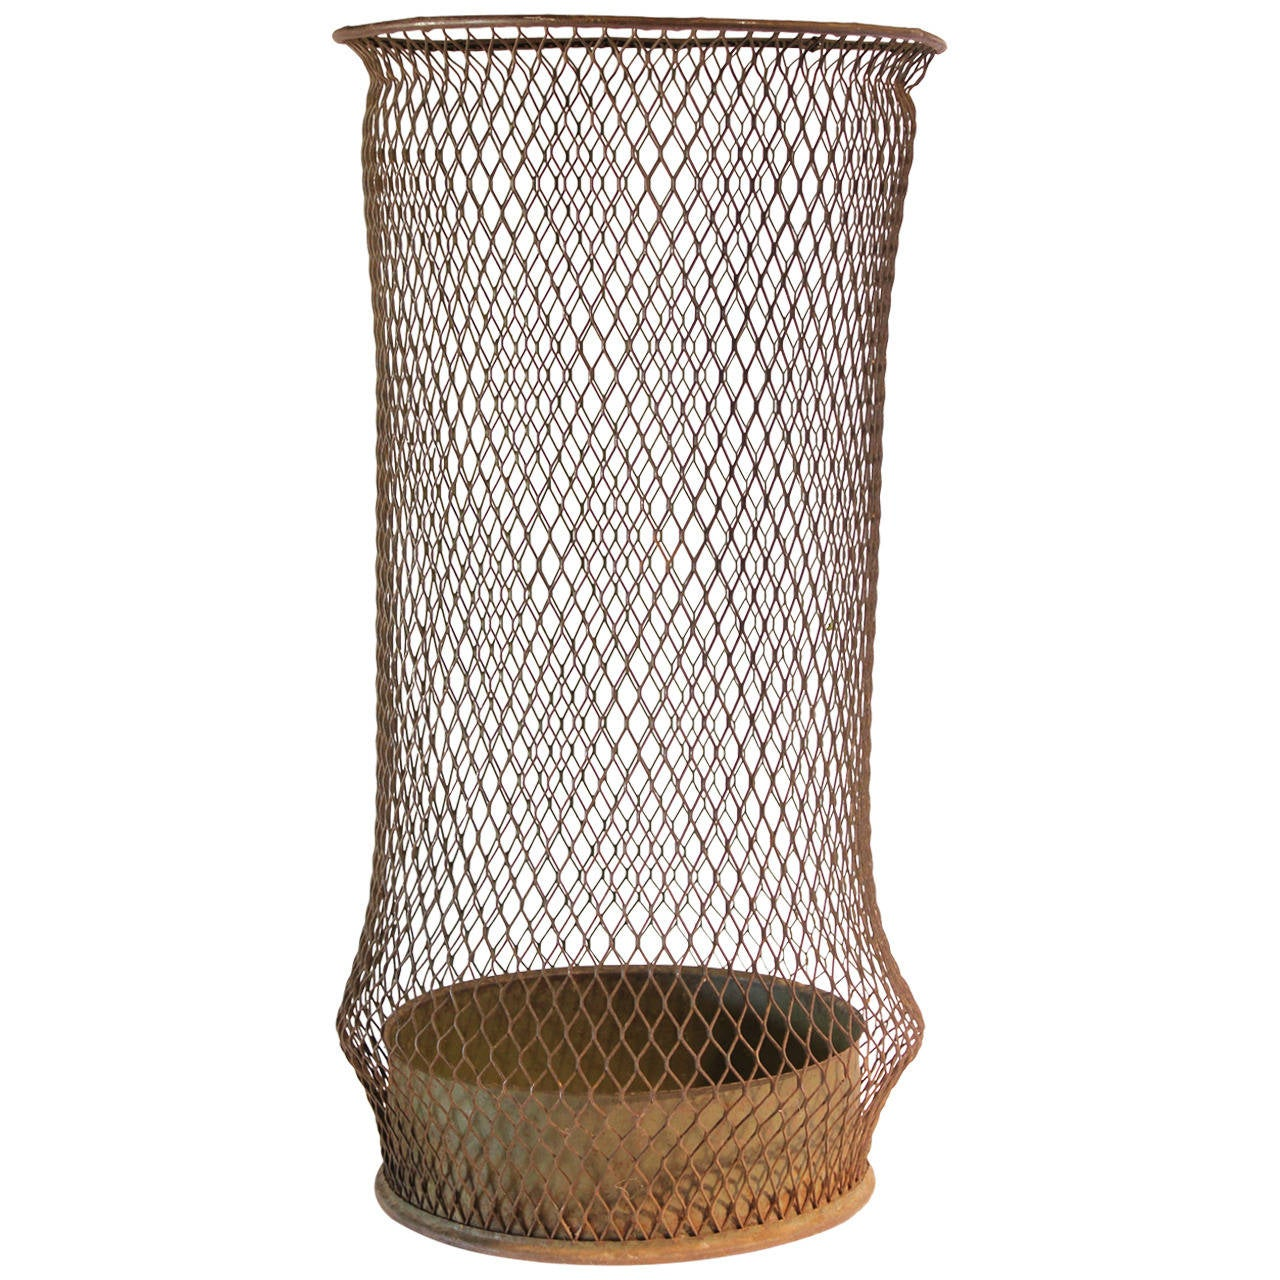 Decorative Metal Waste Baskets Early 20thy Century Tall American Industrial Waste Basket